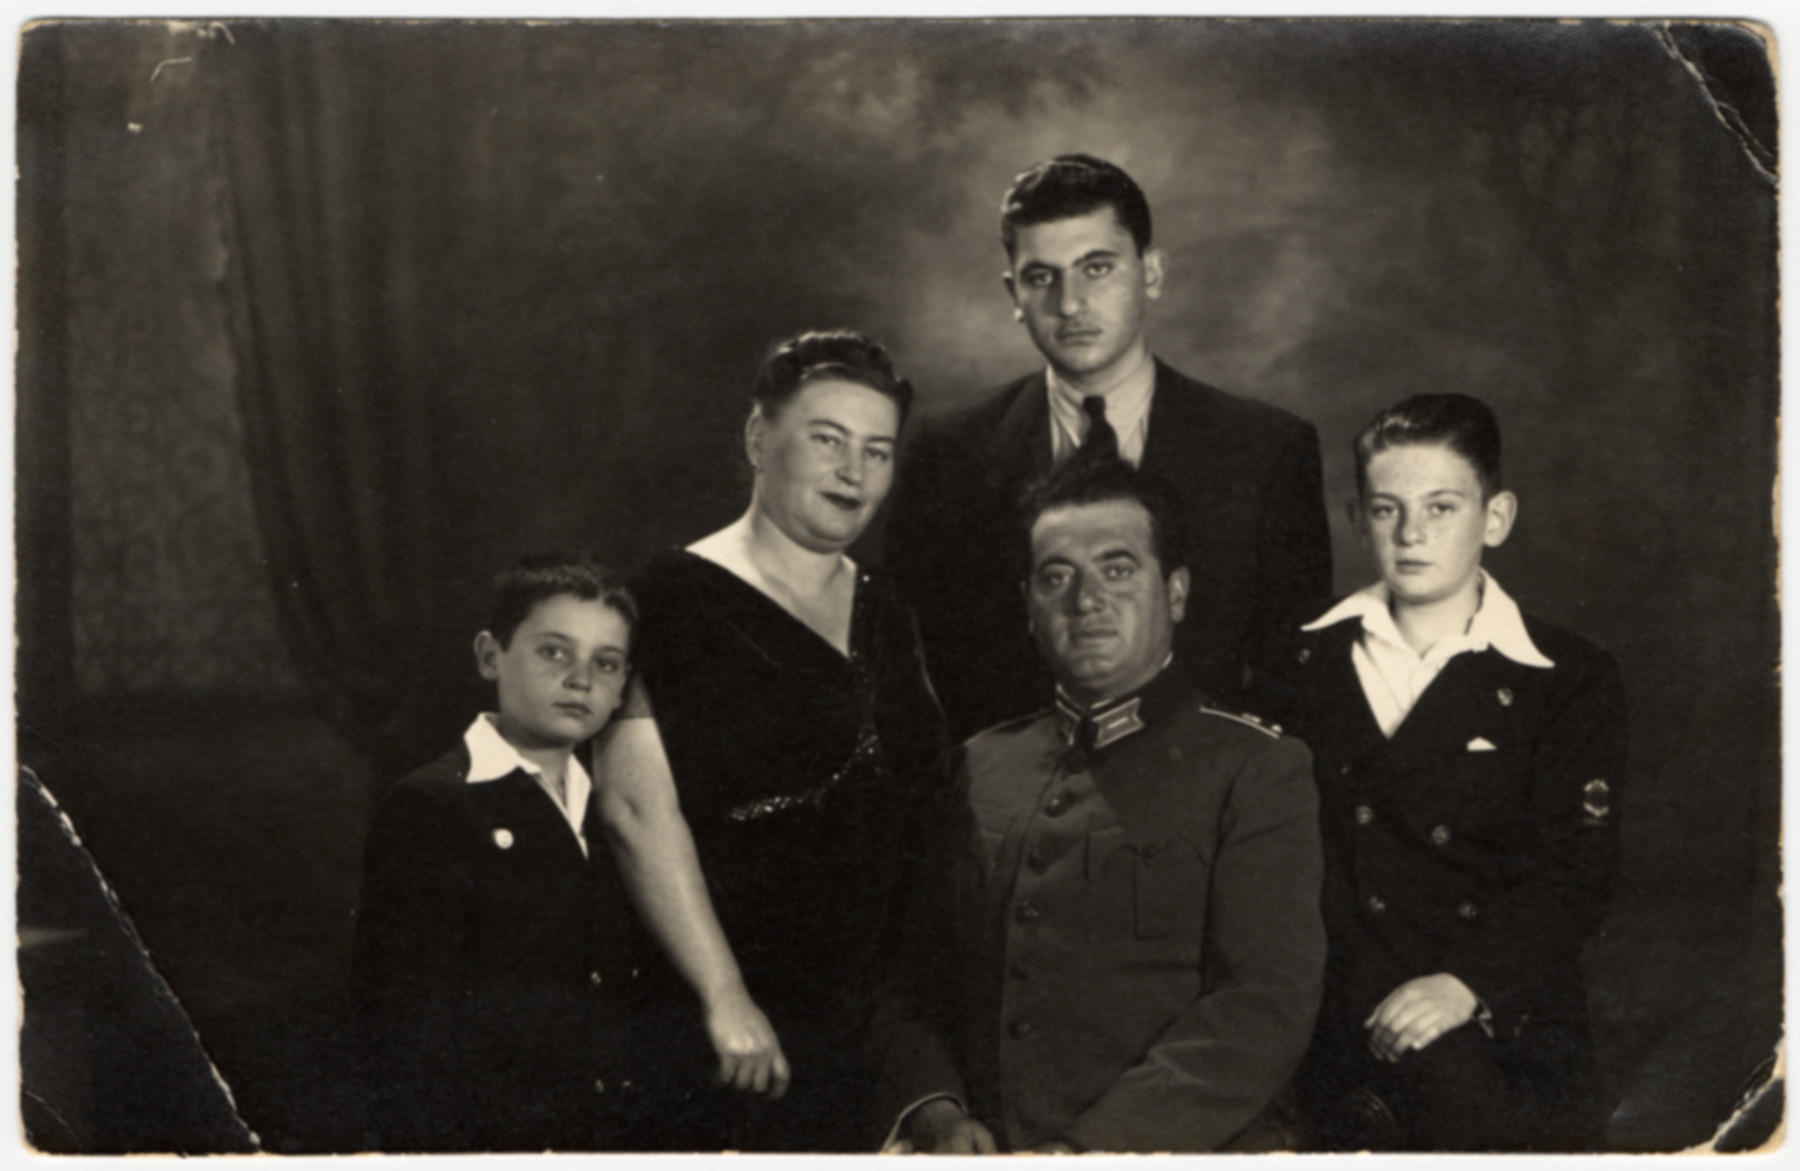 Studio portrait of the Farhis, a Bulgarian Jewish family.  Pictured from left to right are Moise, Karolina, Nissim (wearing his Bulgarian army officer uniform), and Albert.  David Farhi is standing behind his father.